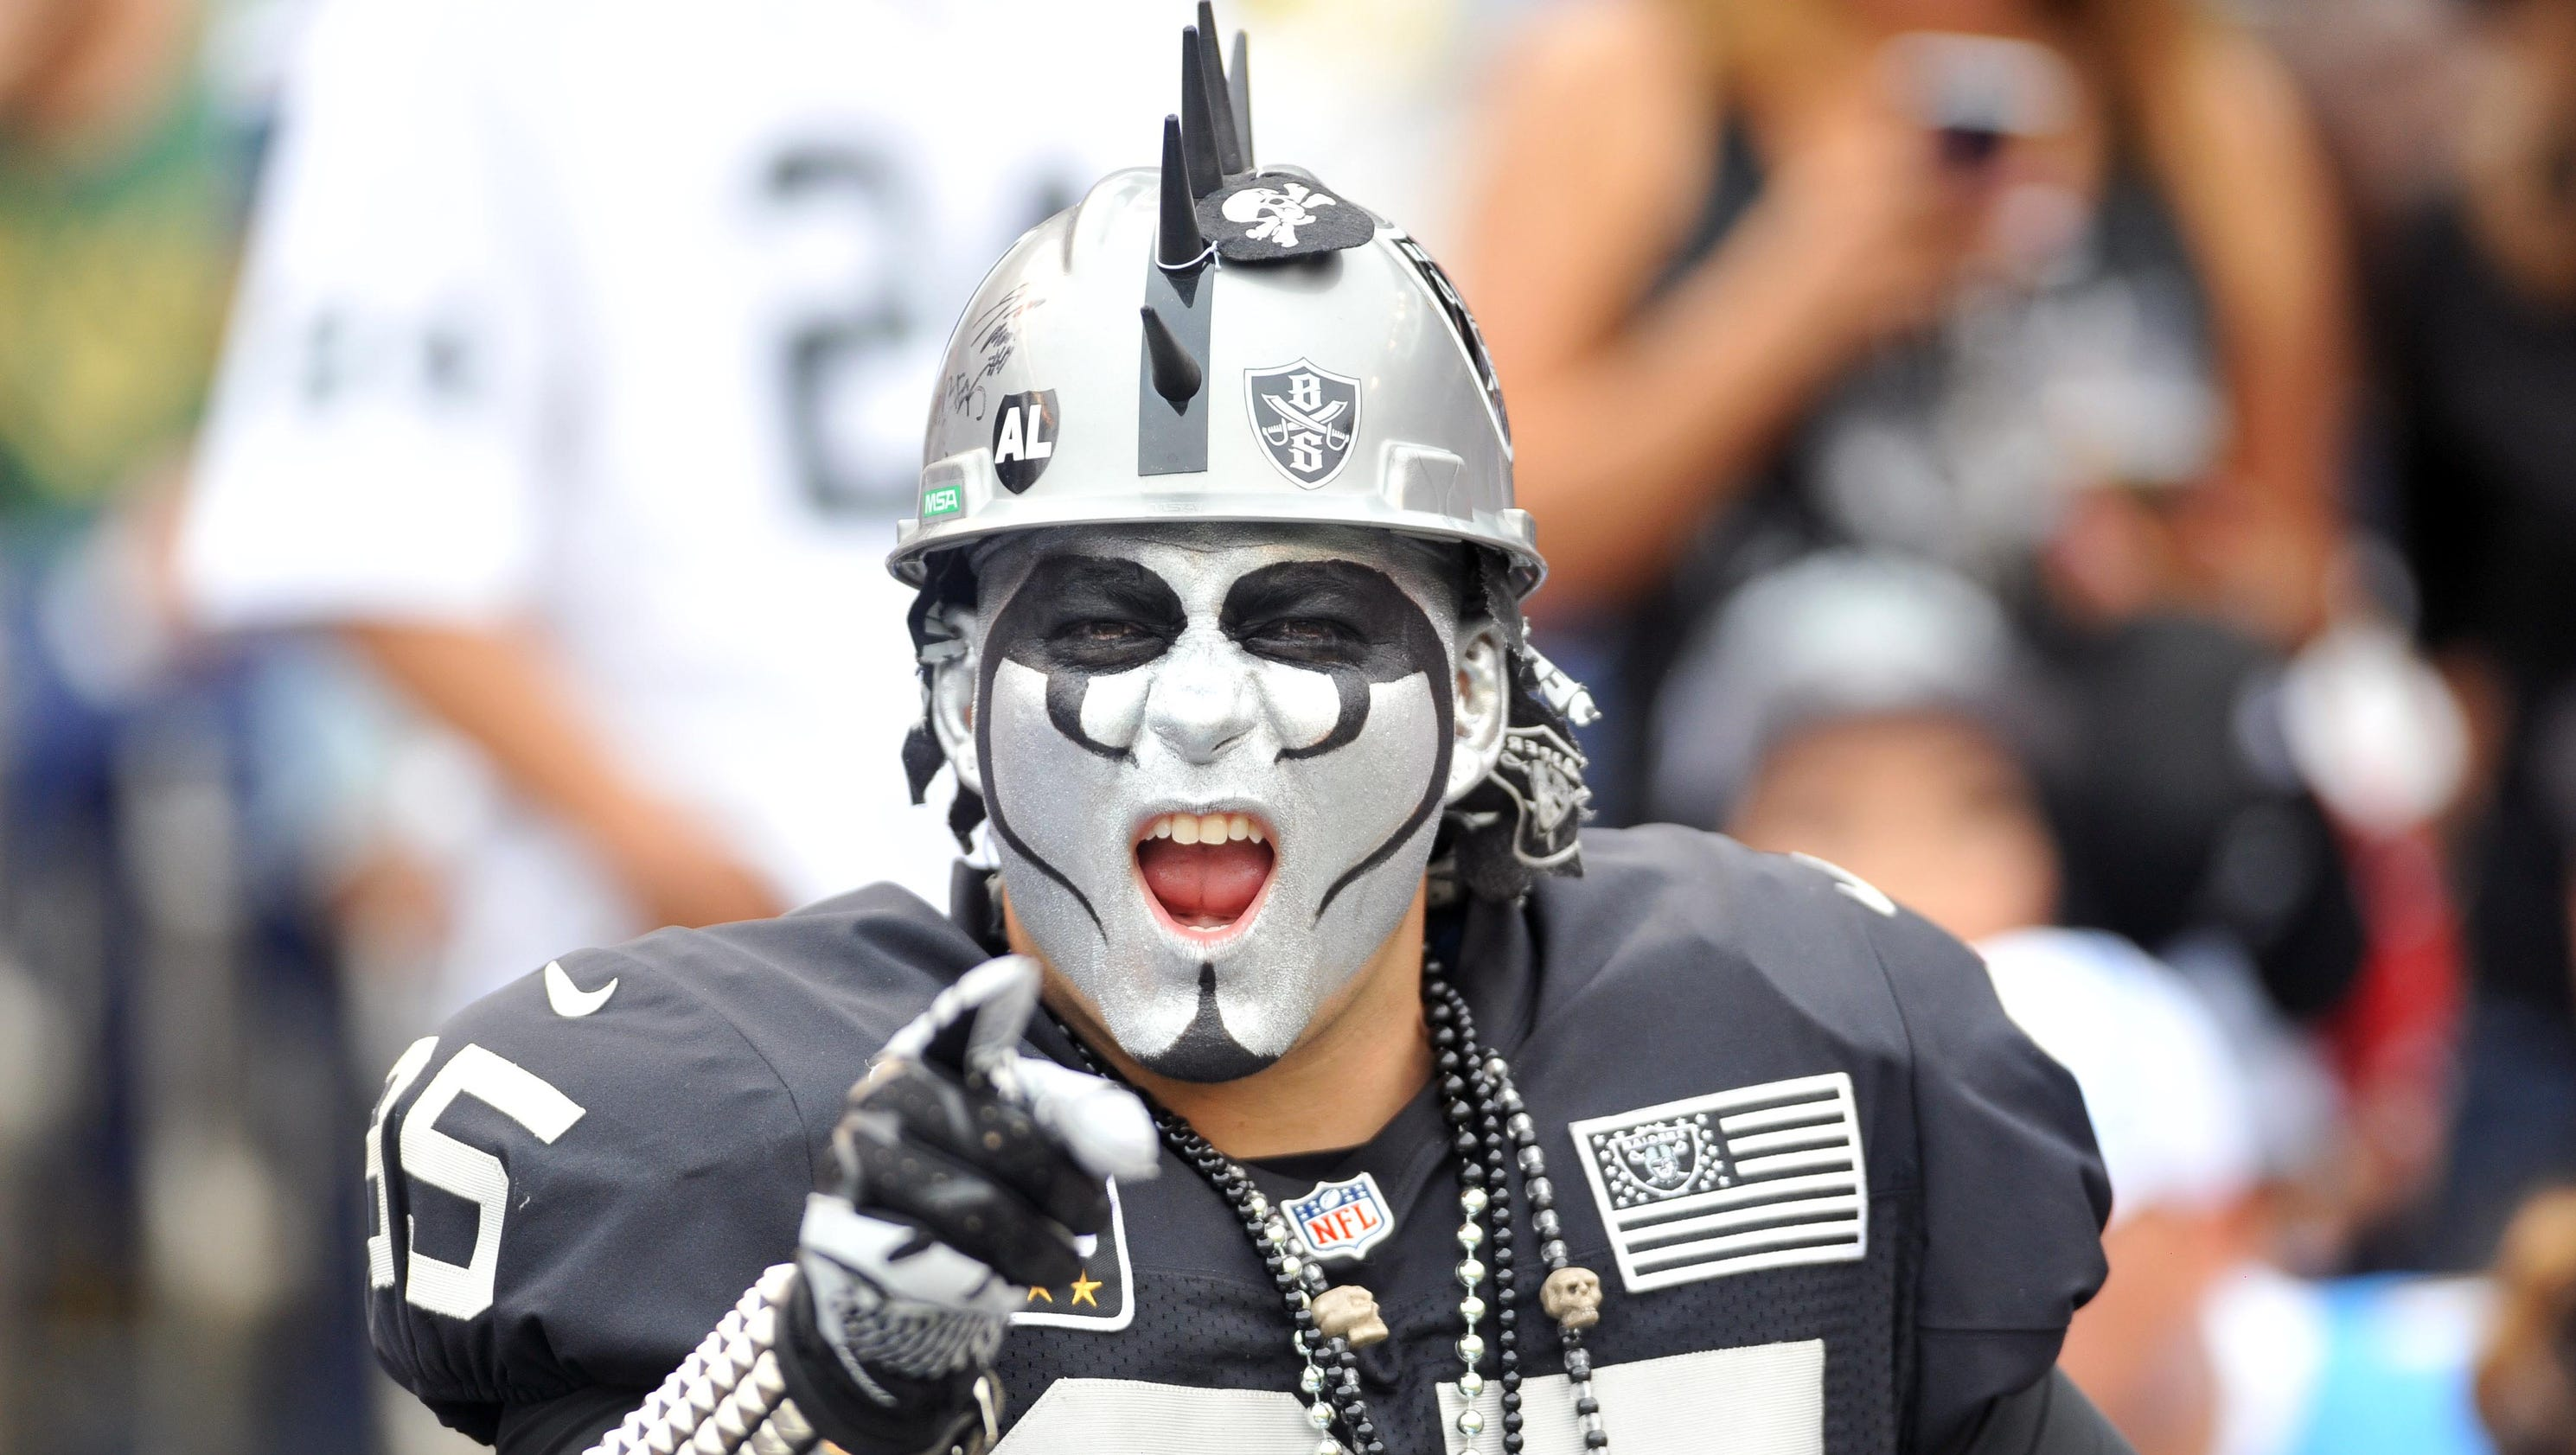 636077242972625529-usp-nfl-oakland-raiders-at-san-diego-chargers-77033956